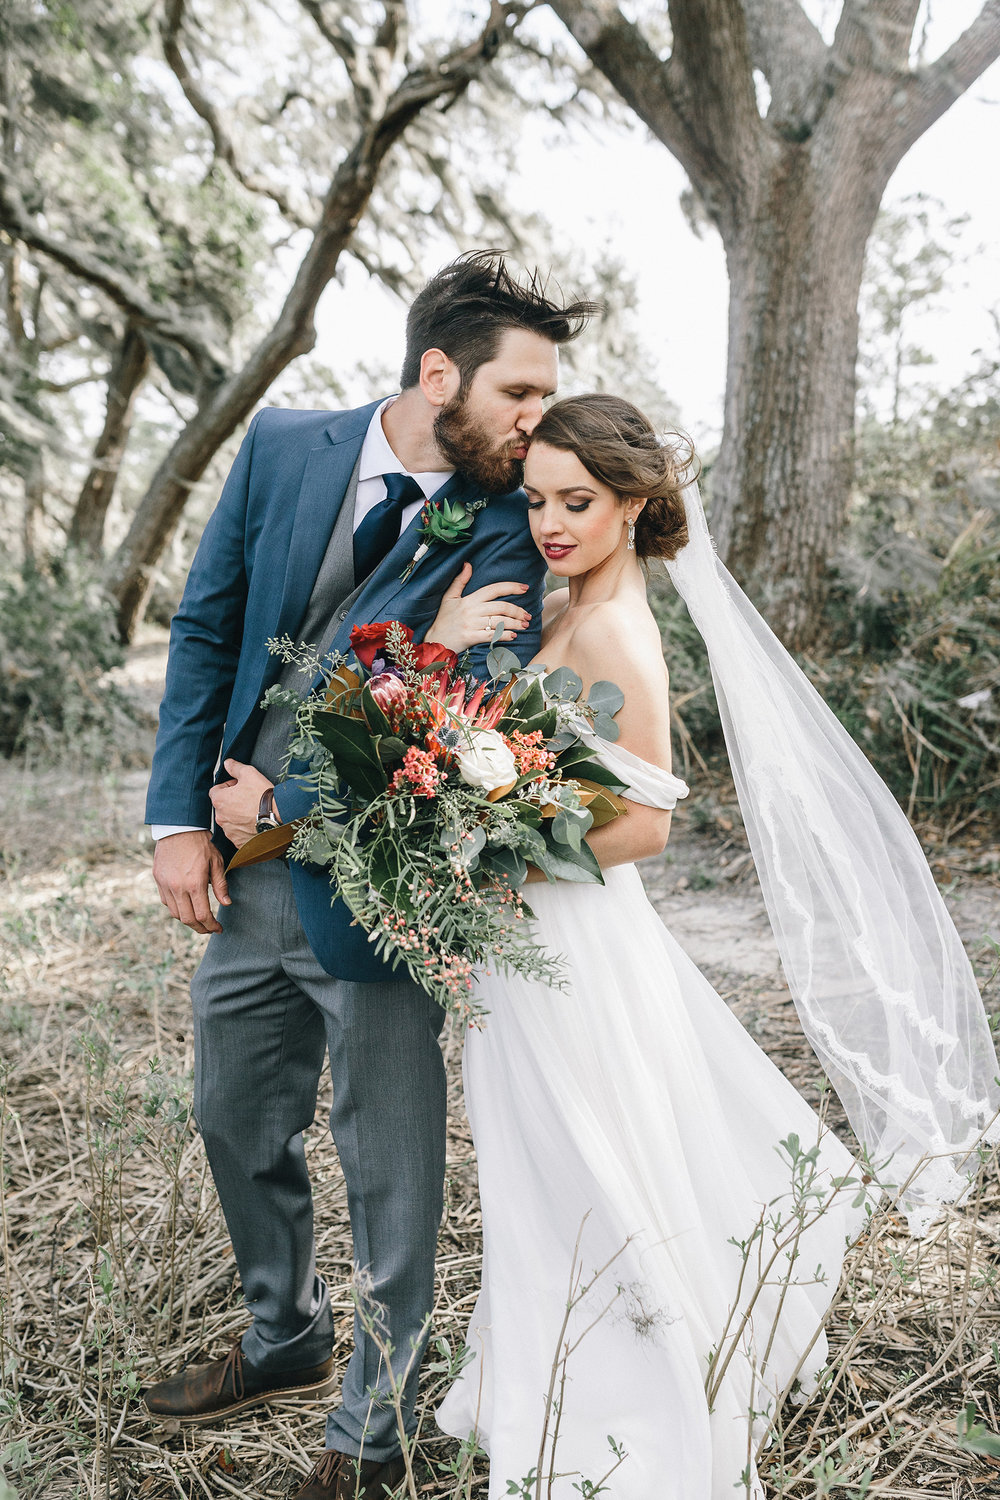 Amy & Timothy's Savannah GA wedding by Mackensey Alexander Photography